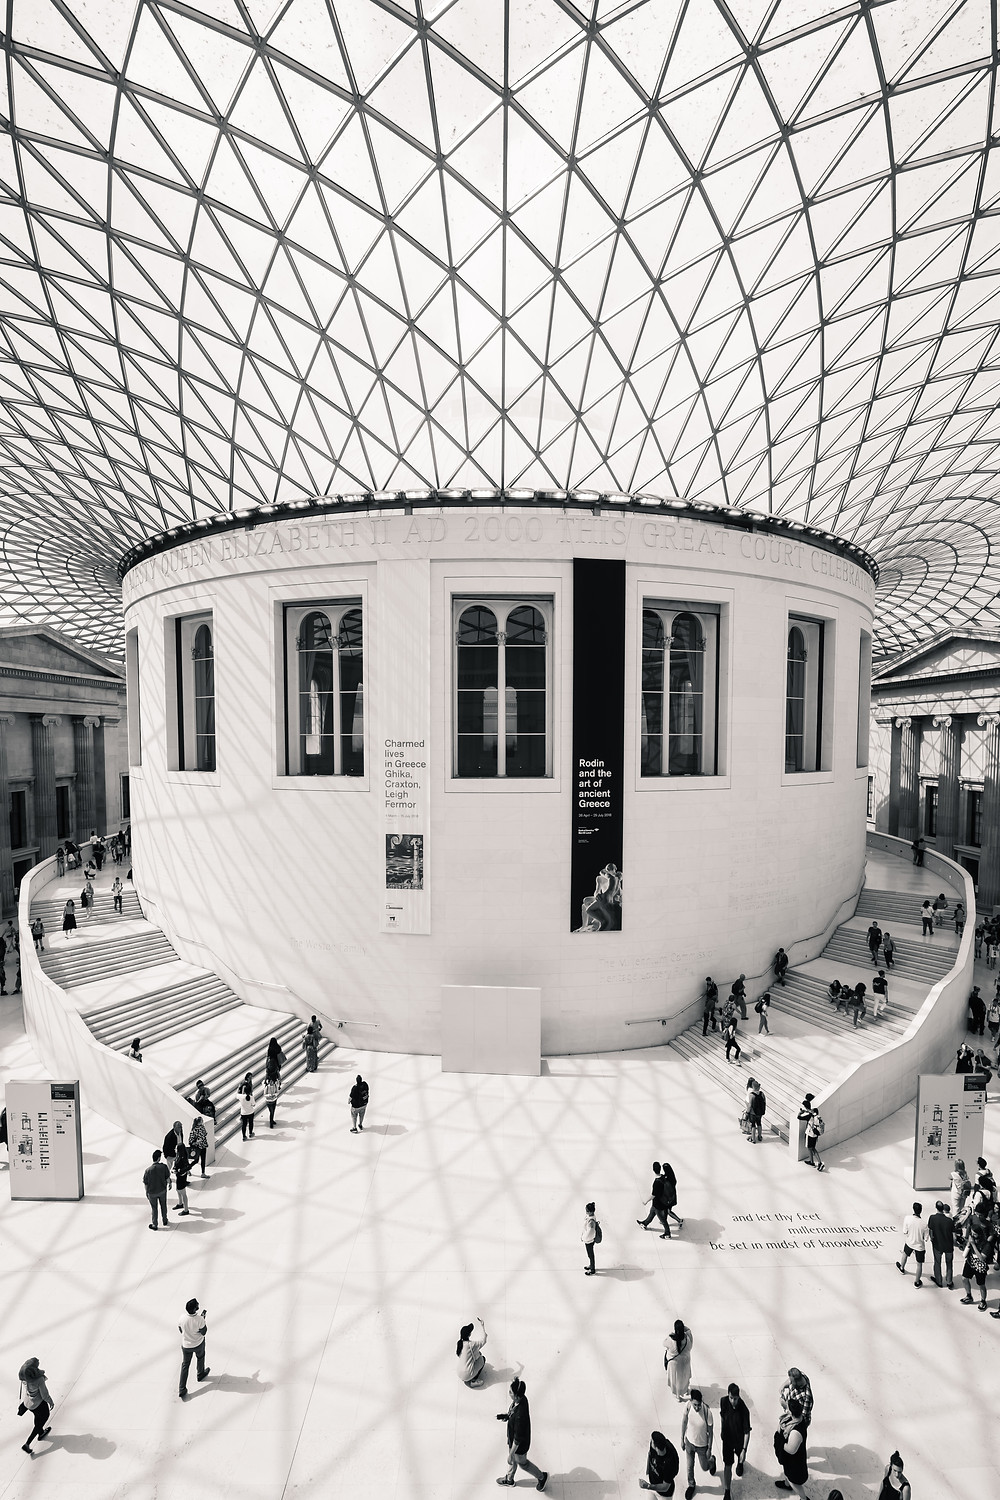 atrium of the British Museum